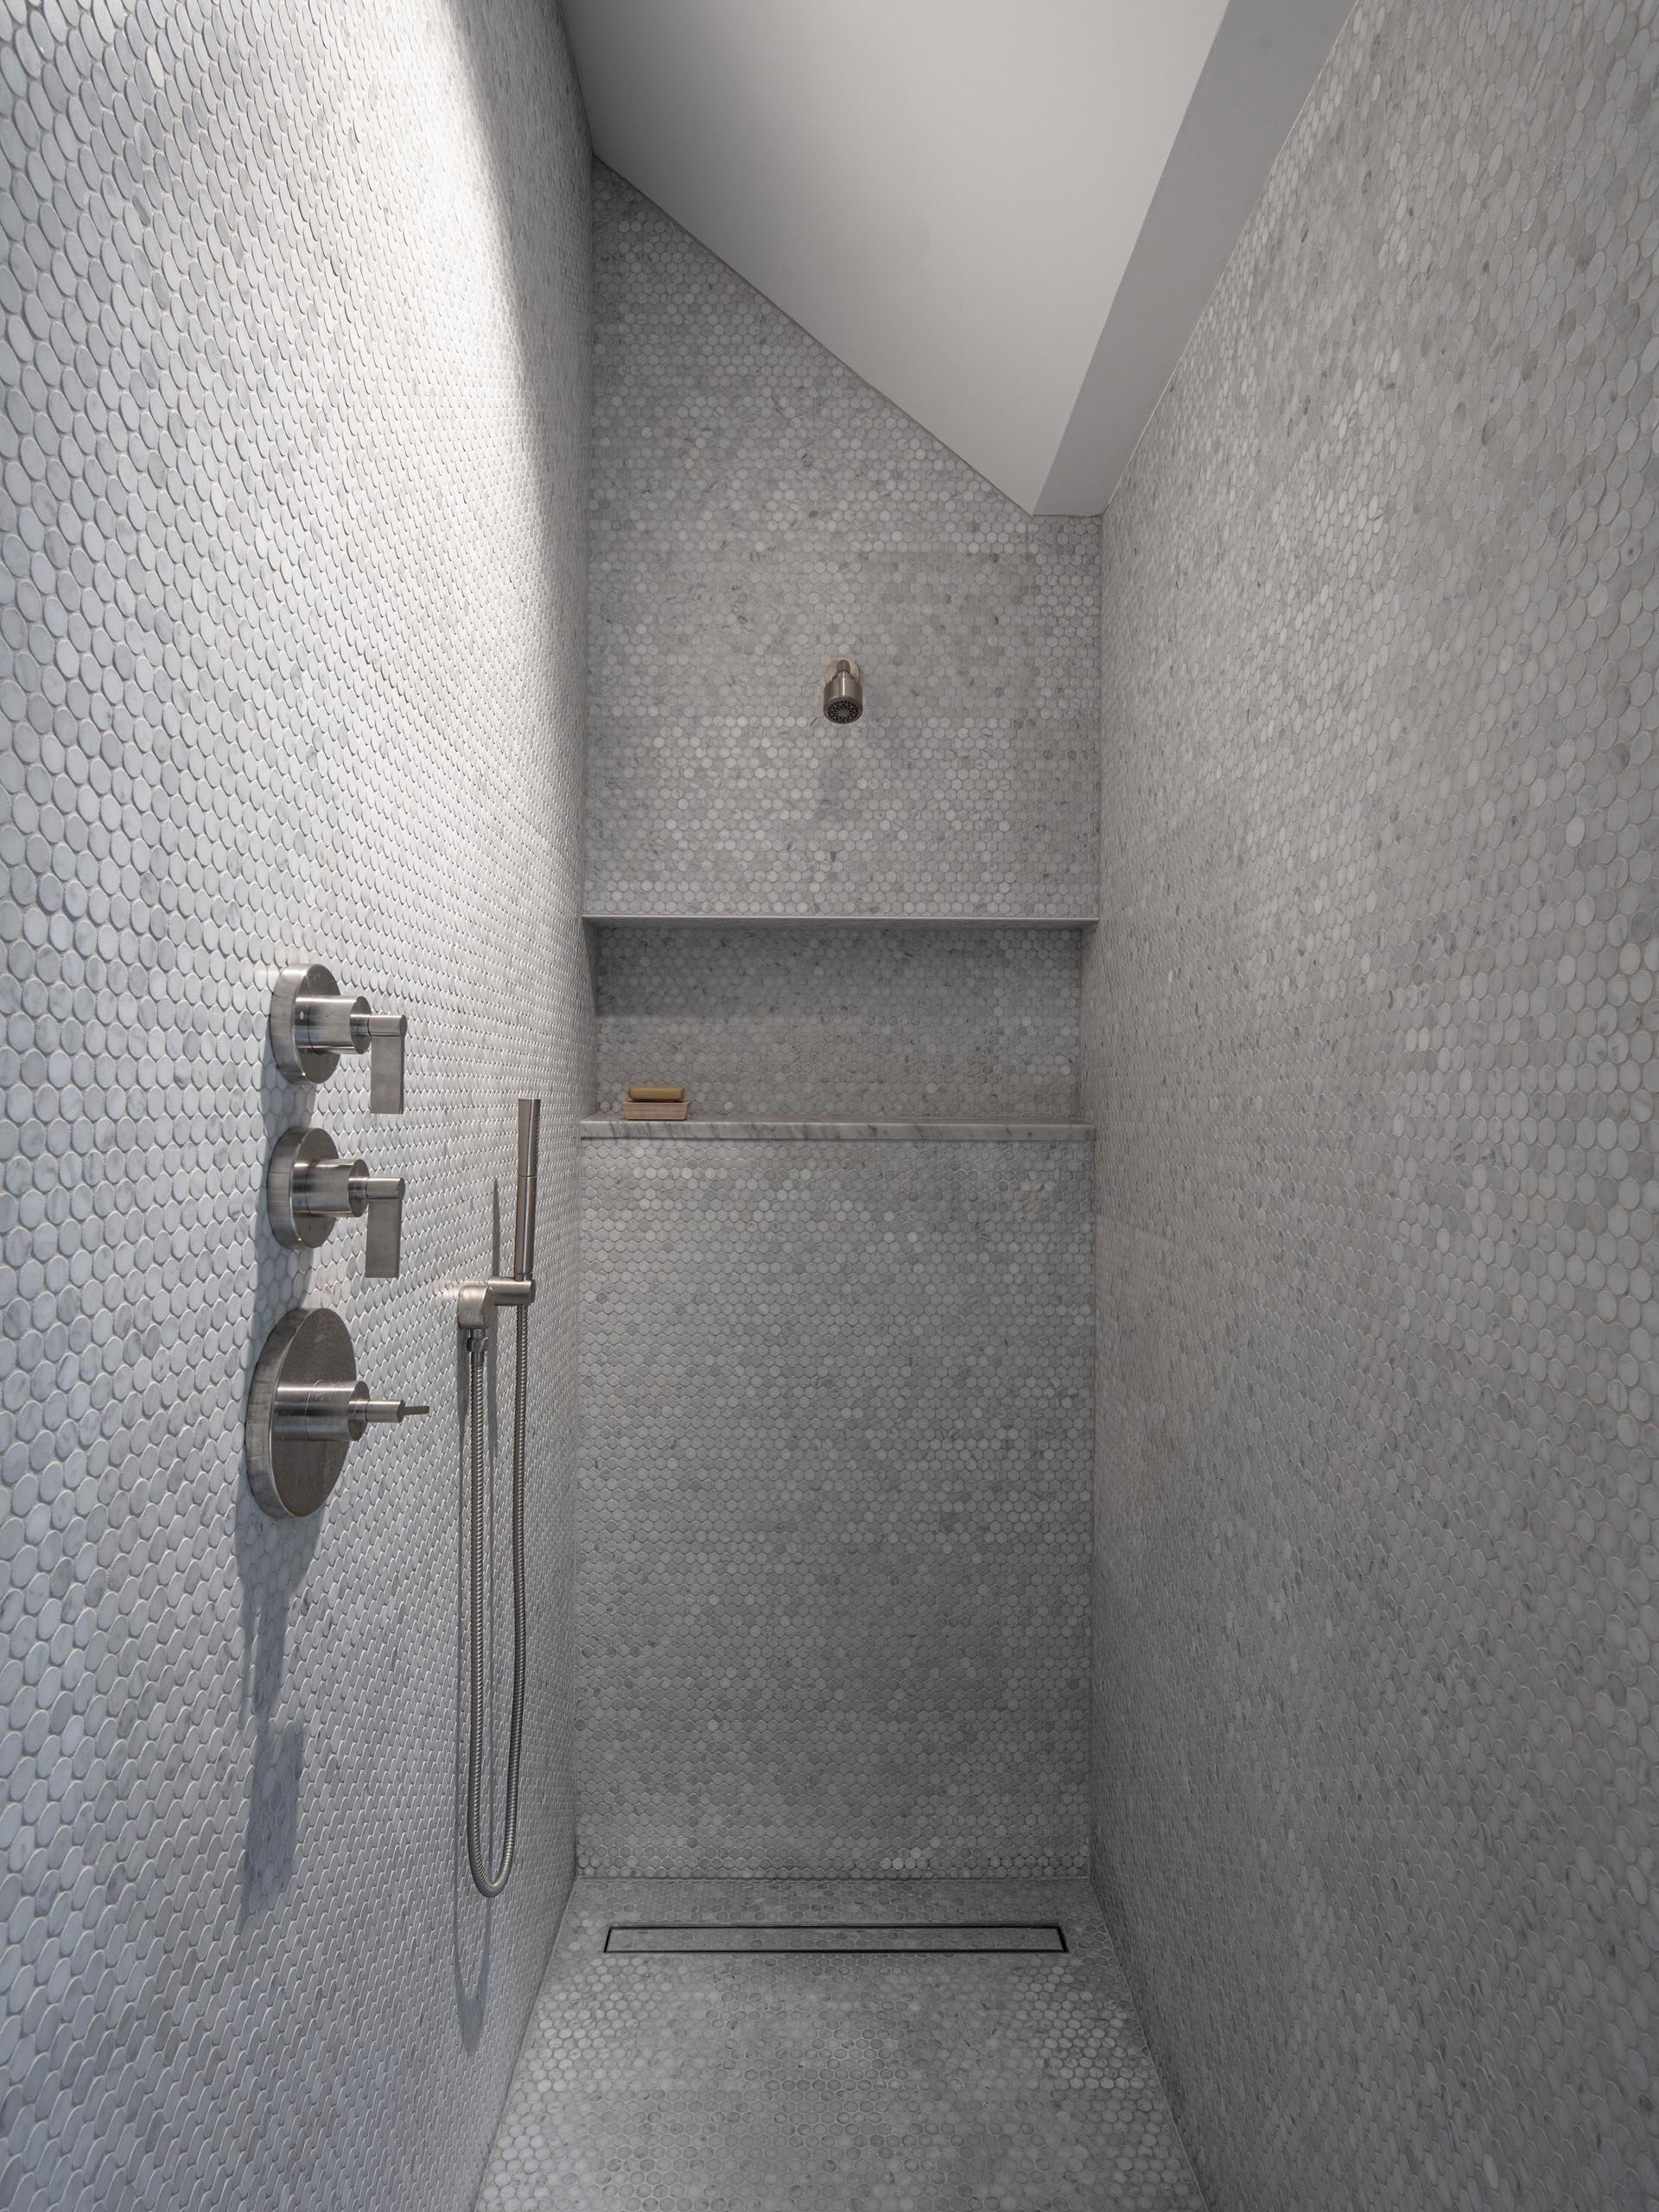 A modern shower with floor-to-ceiling grey penny tiles, a linear shower drain, and a built-in shelf.